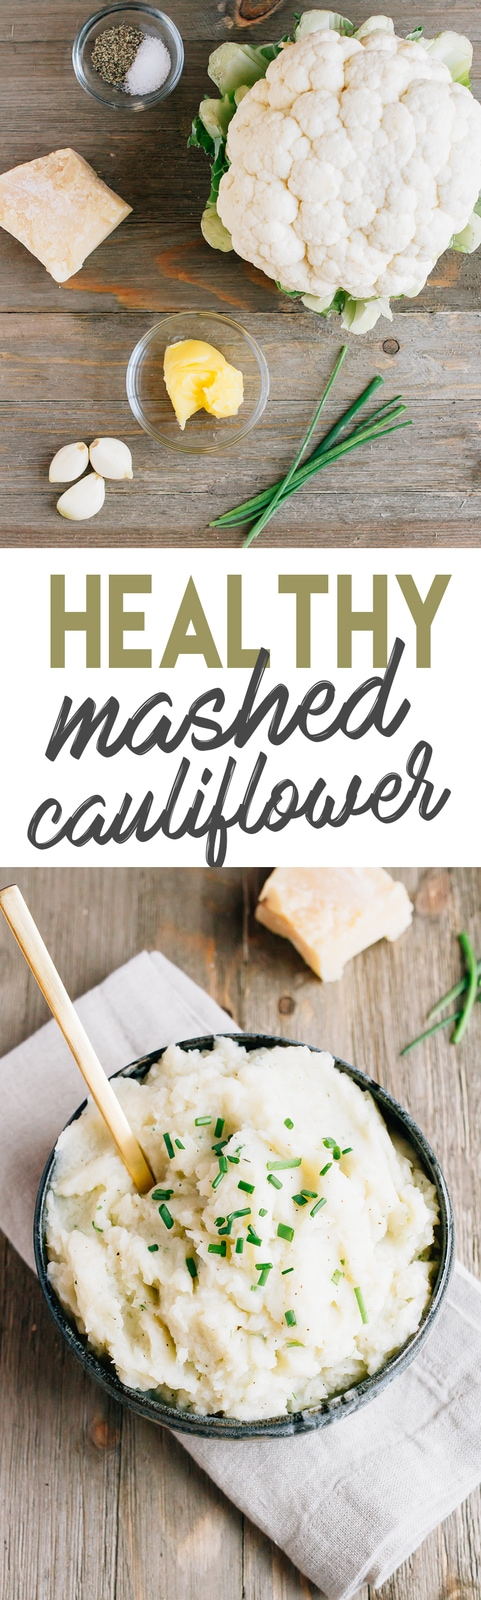 6-Ingredient Mashed Cauliflower // Low in carbs and only 110 calories per serving!